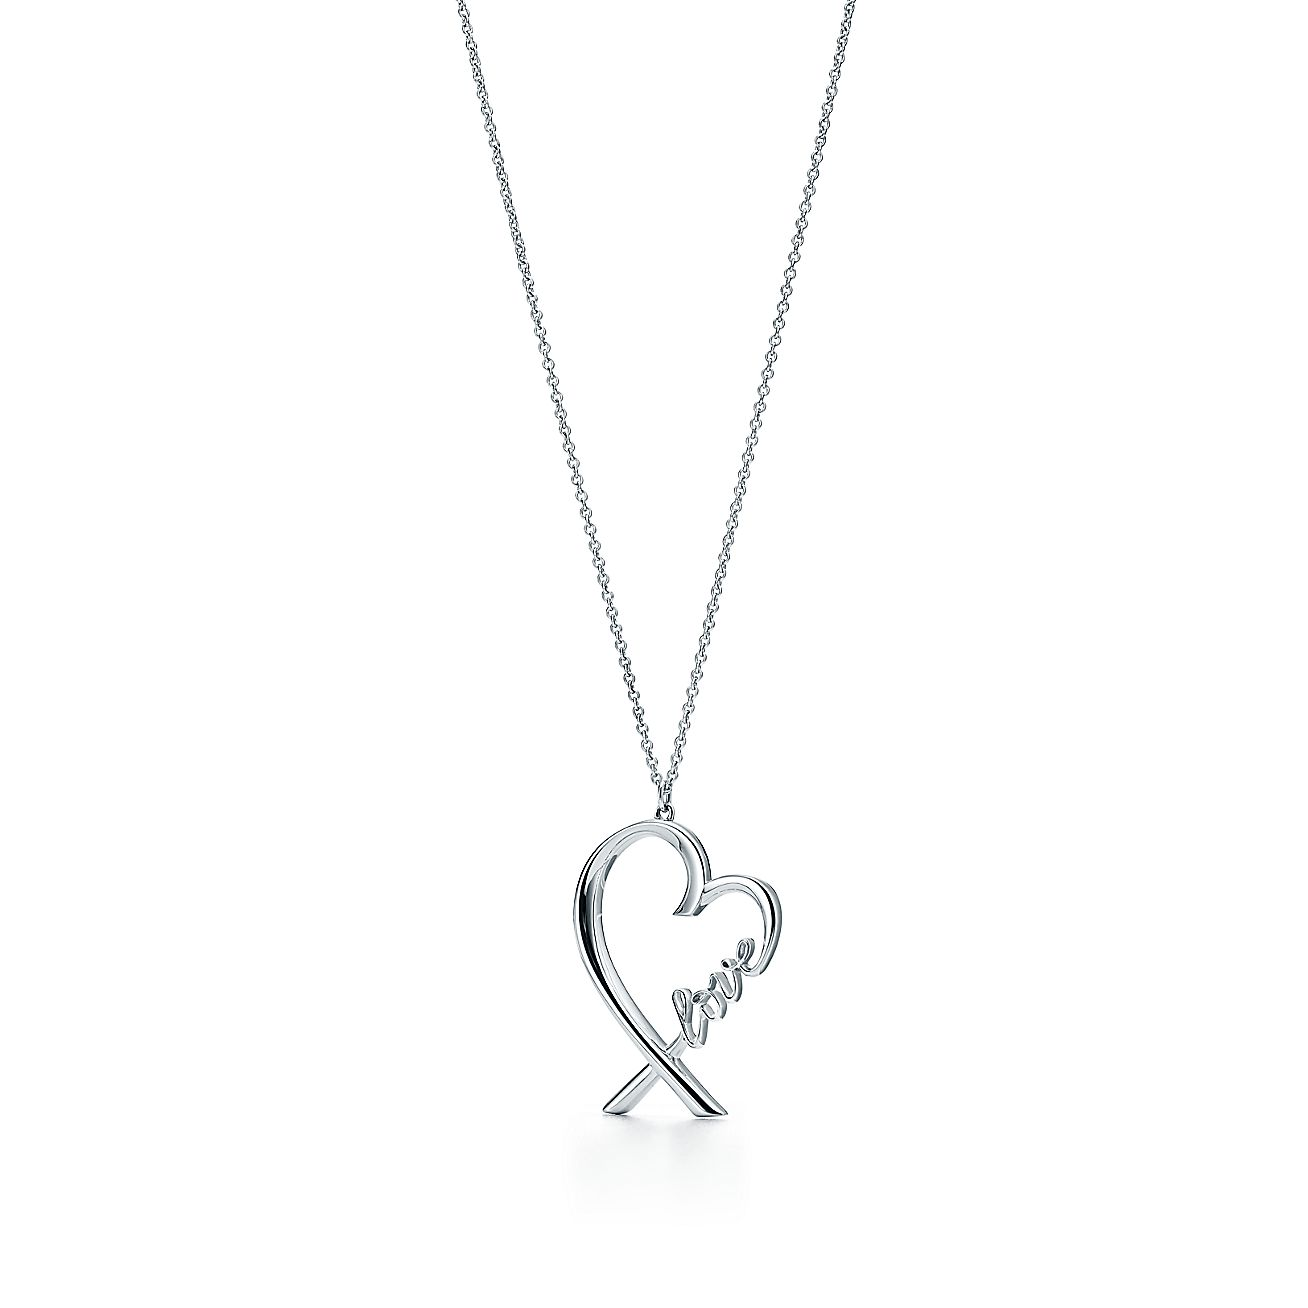 Paloma picasso loving heart love pendant in sterling silver paloma picasso loving heart love pendant in sterling silver tiffany co aloadofball Choice Image